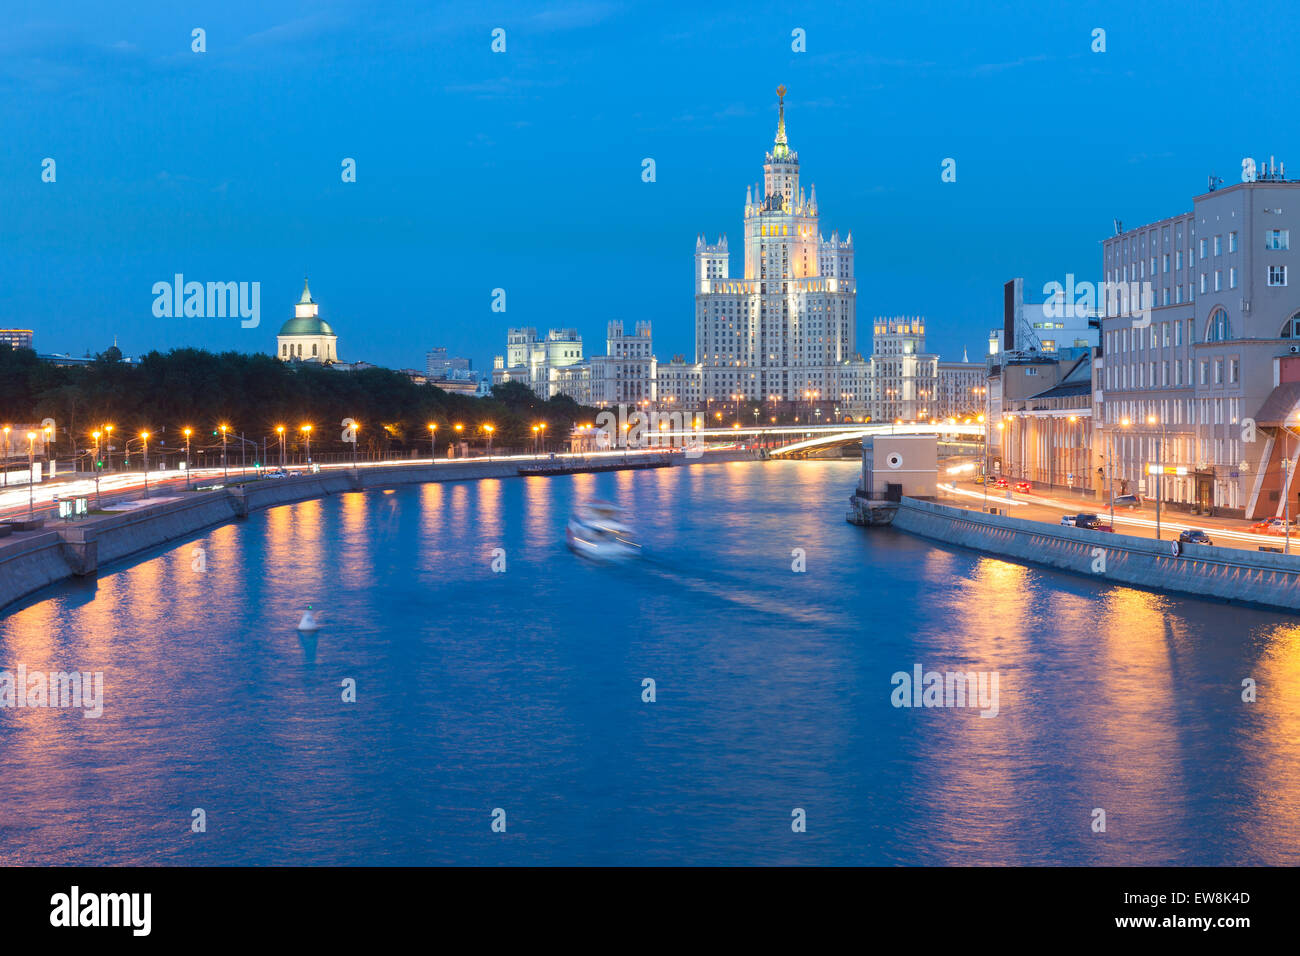 Dusk view of the Kotelnicheskaya Embankment Building, one of the Seven Sisters buildings in Moscow, Russia. Stock Photo